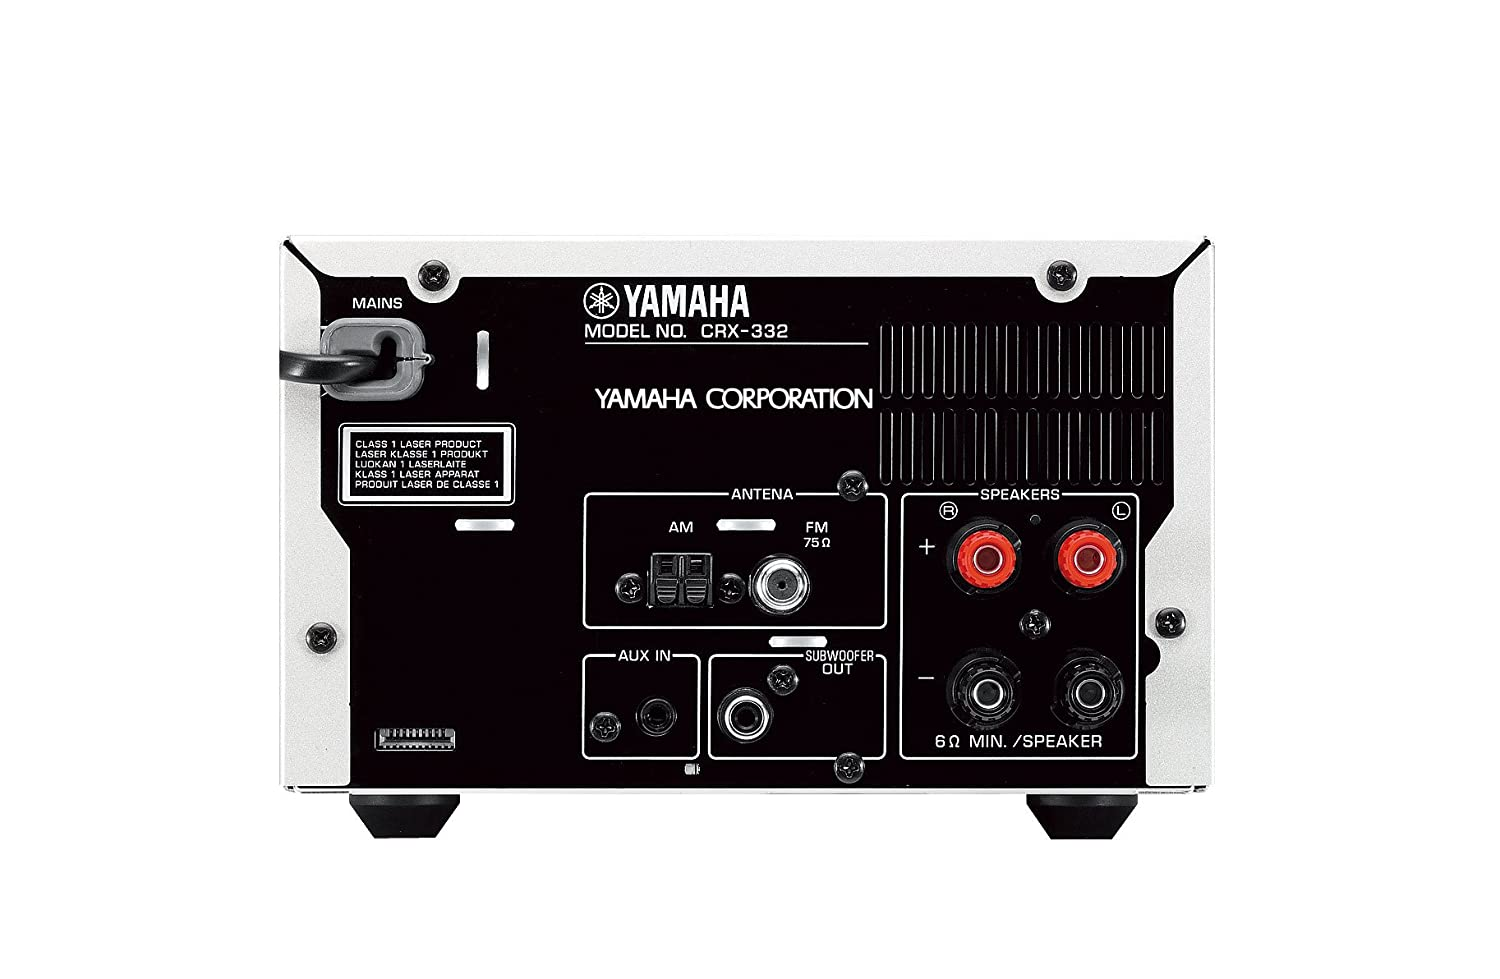 pin yamaha yst sw160 90 speaker get this manual now browse. Black Bedroom Furniture Sets. Home Design Ideas